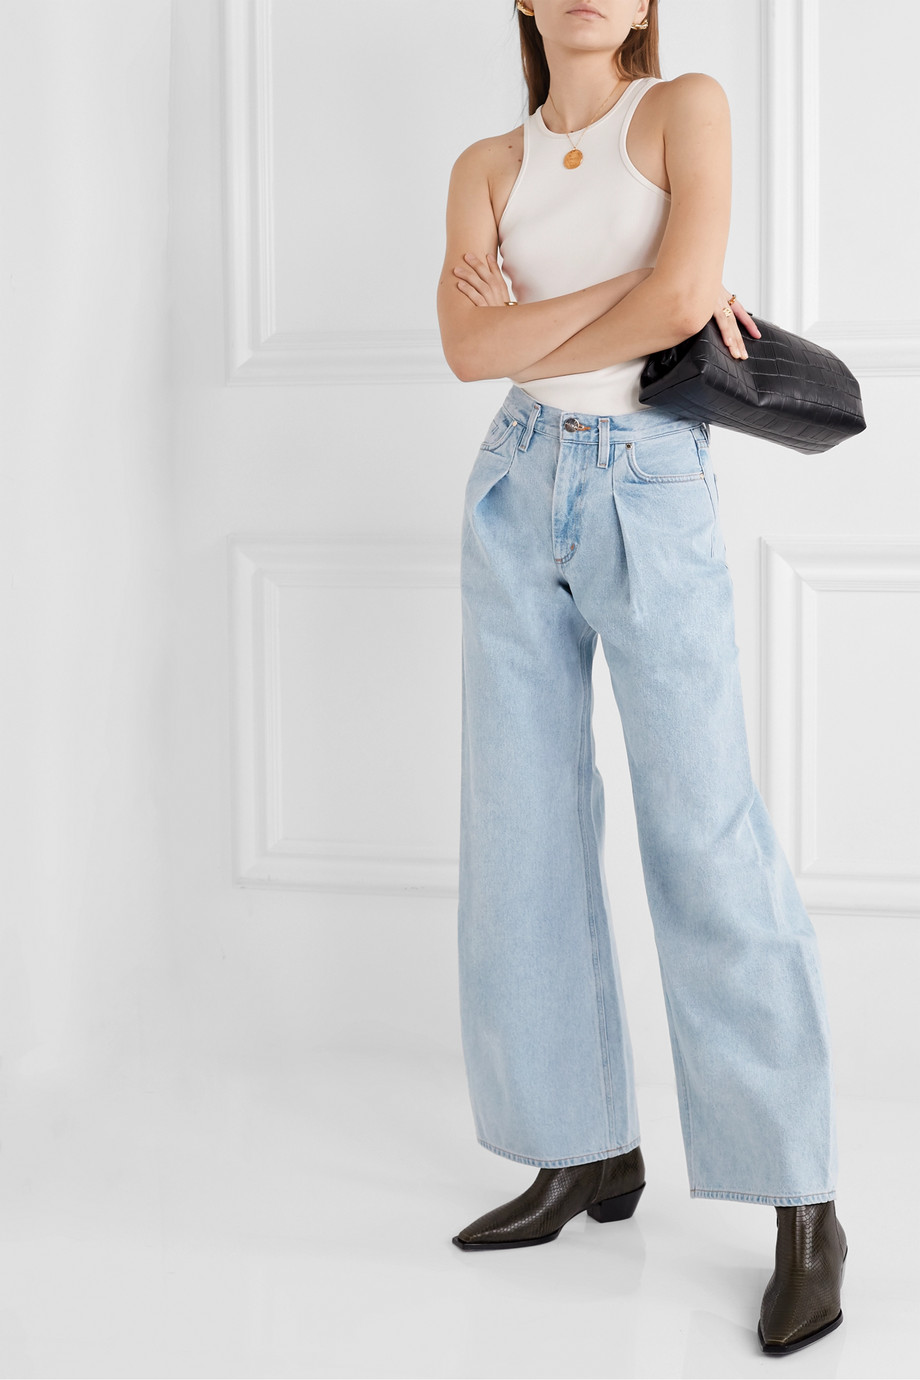 Goldsign pleated jeans